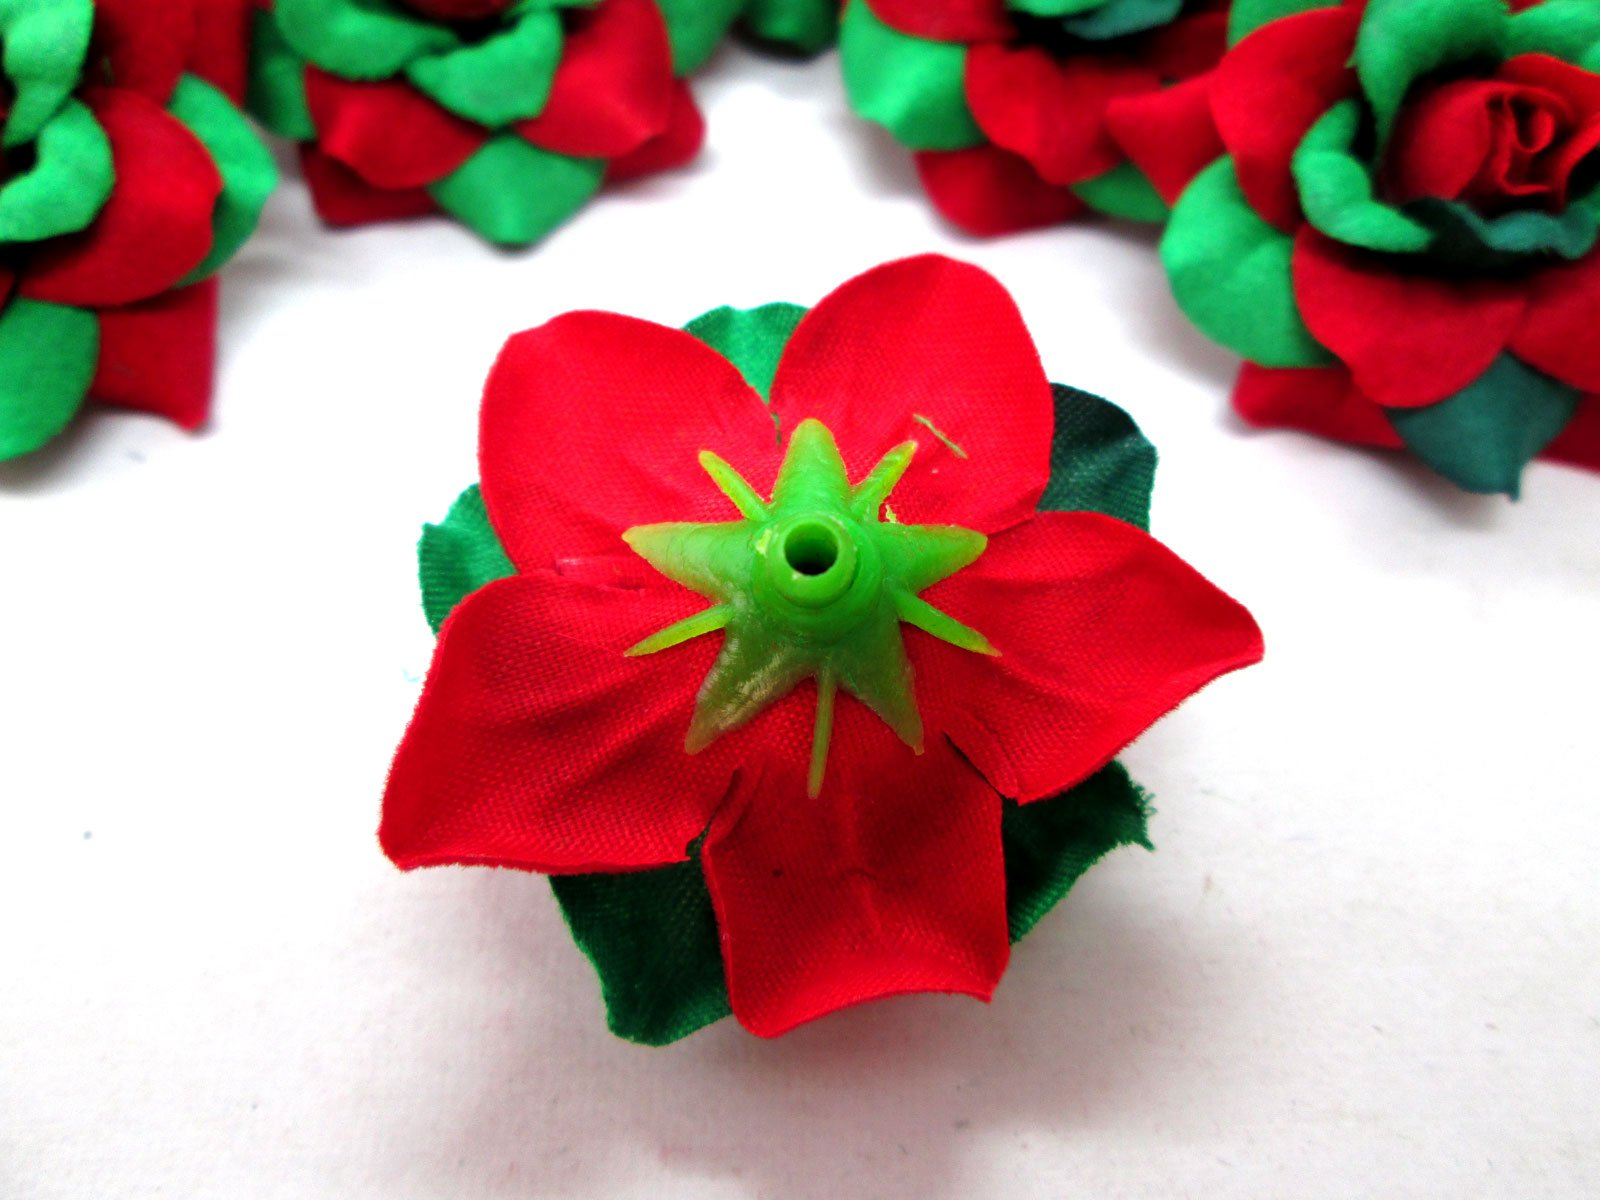 100-Silk-Christmas-Roses-Red-Green-Flower-Heads-175-Artificial-Flowers-Heads-Fabric-Floral-Supplies-Wholesale-Lot-for-Wedding-Flowers-Accessories-Make-Bridal-Hair-Clips-Headbands-Dress